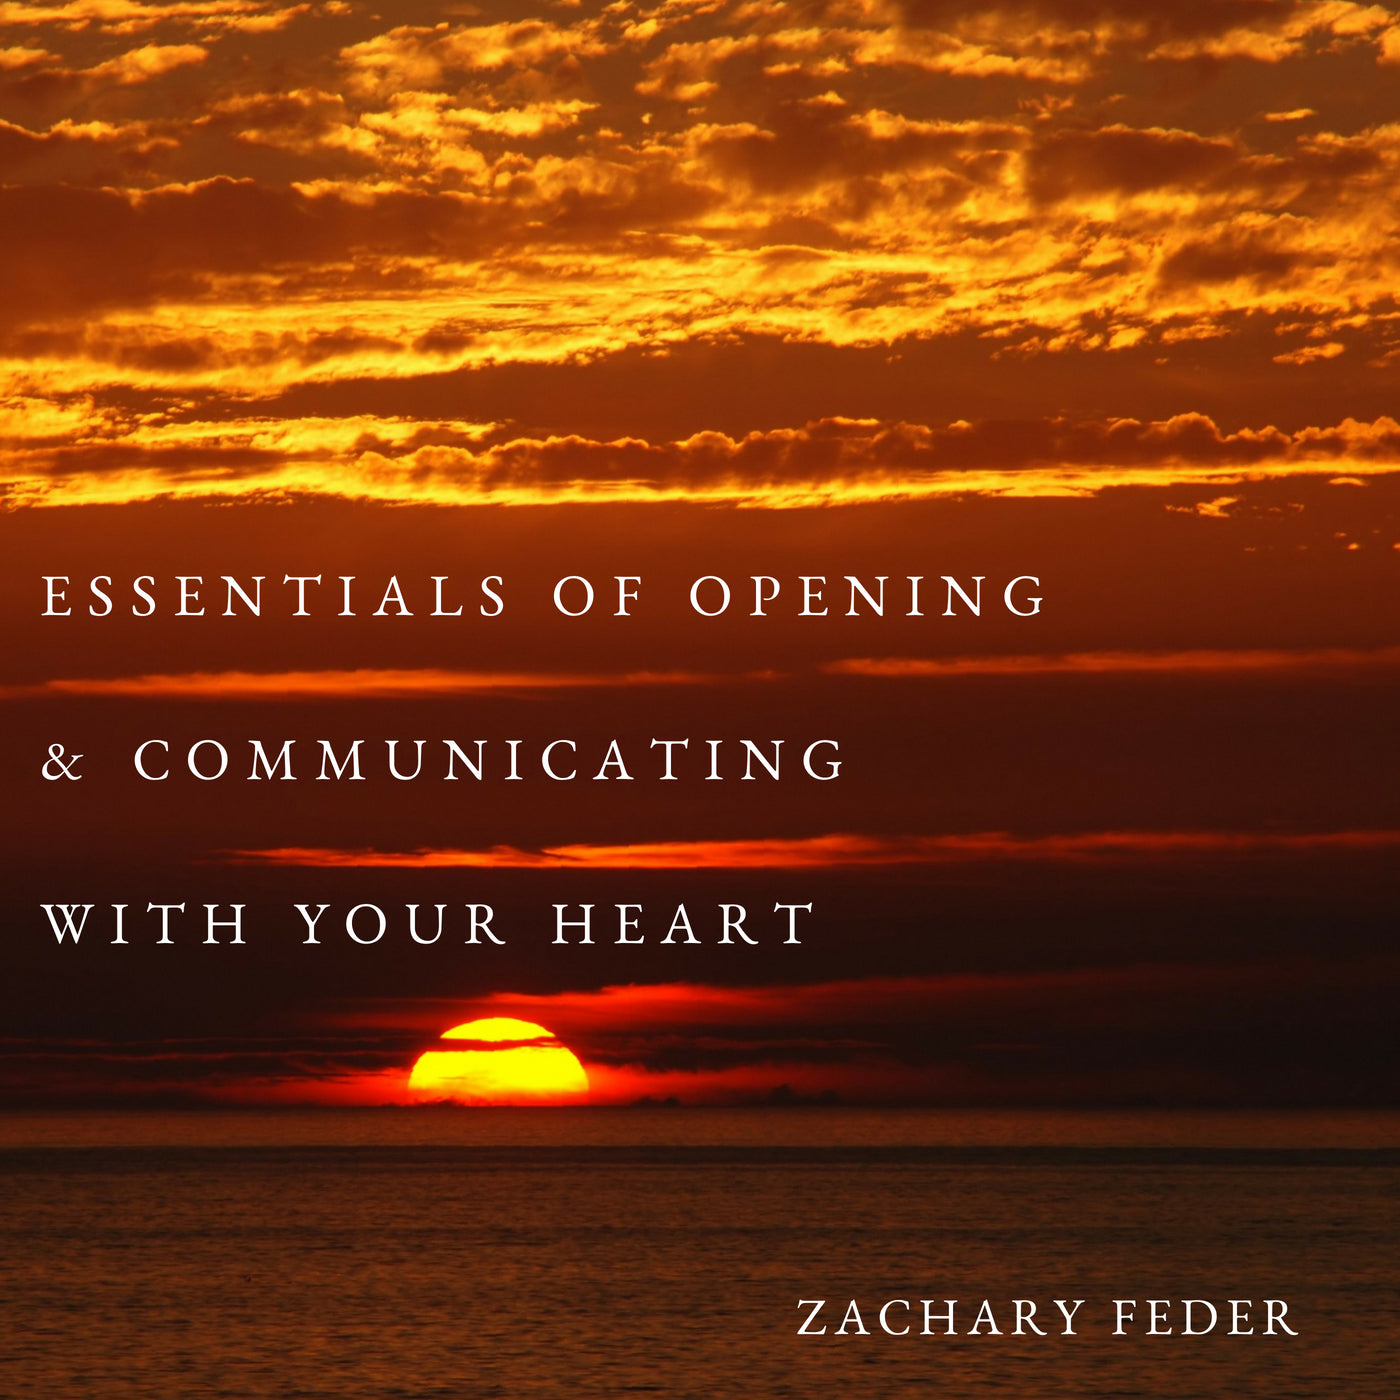 Essentials of Opening and Communicating With Your Heart - Digital Download